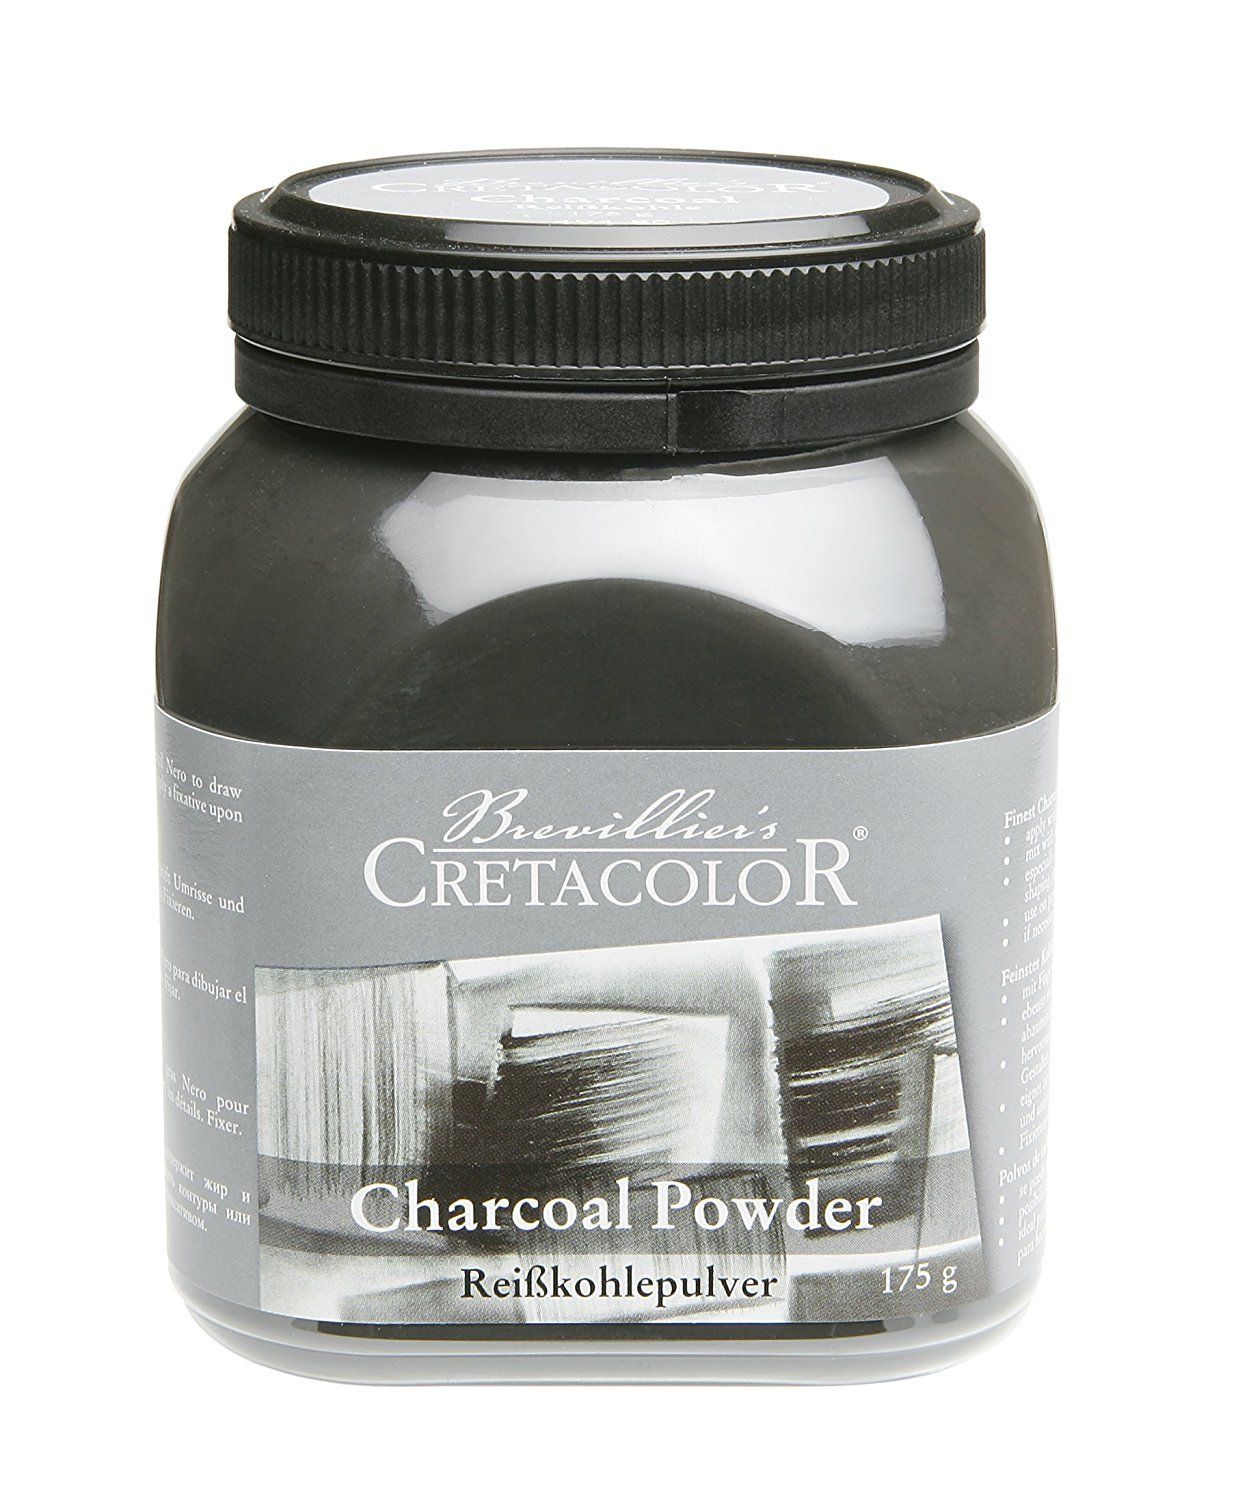 Cretacolor Charcoal Powder 175g Jar Tottenzo 494 80